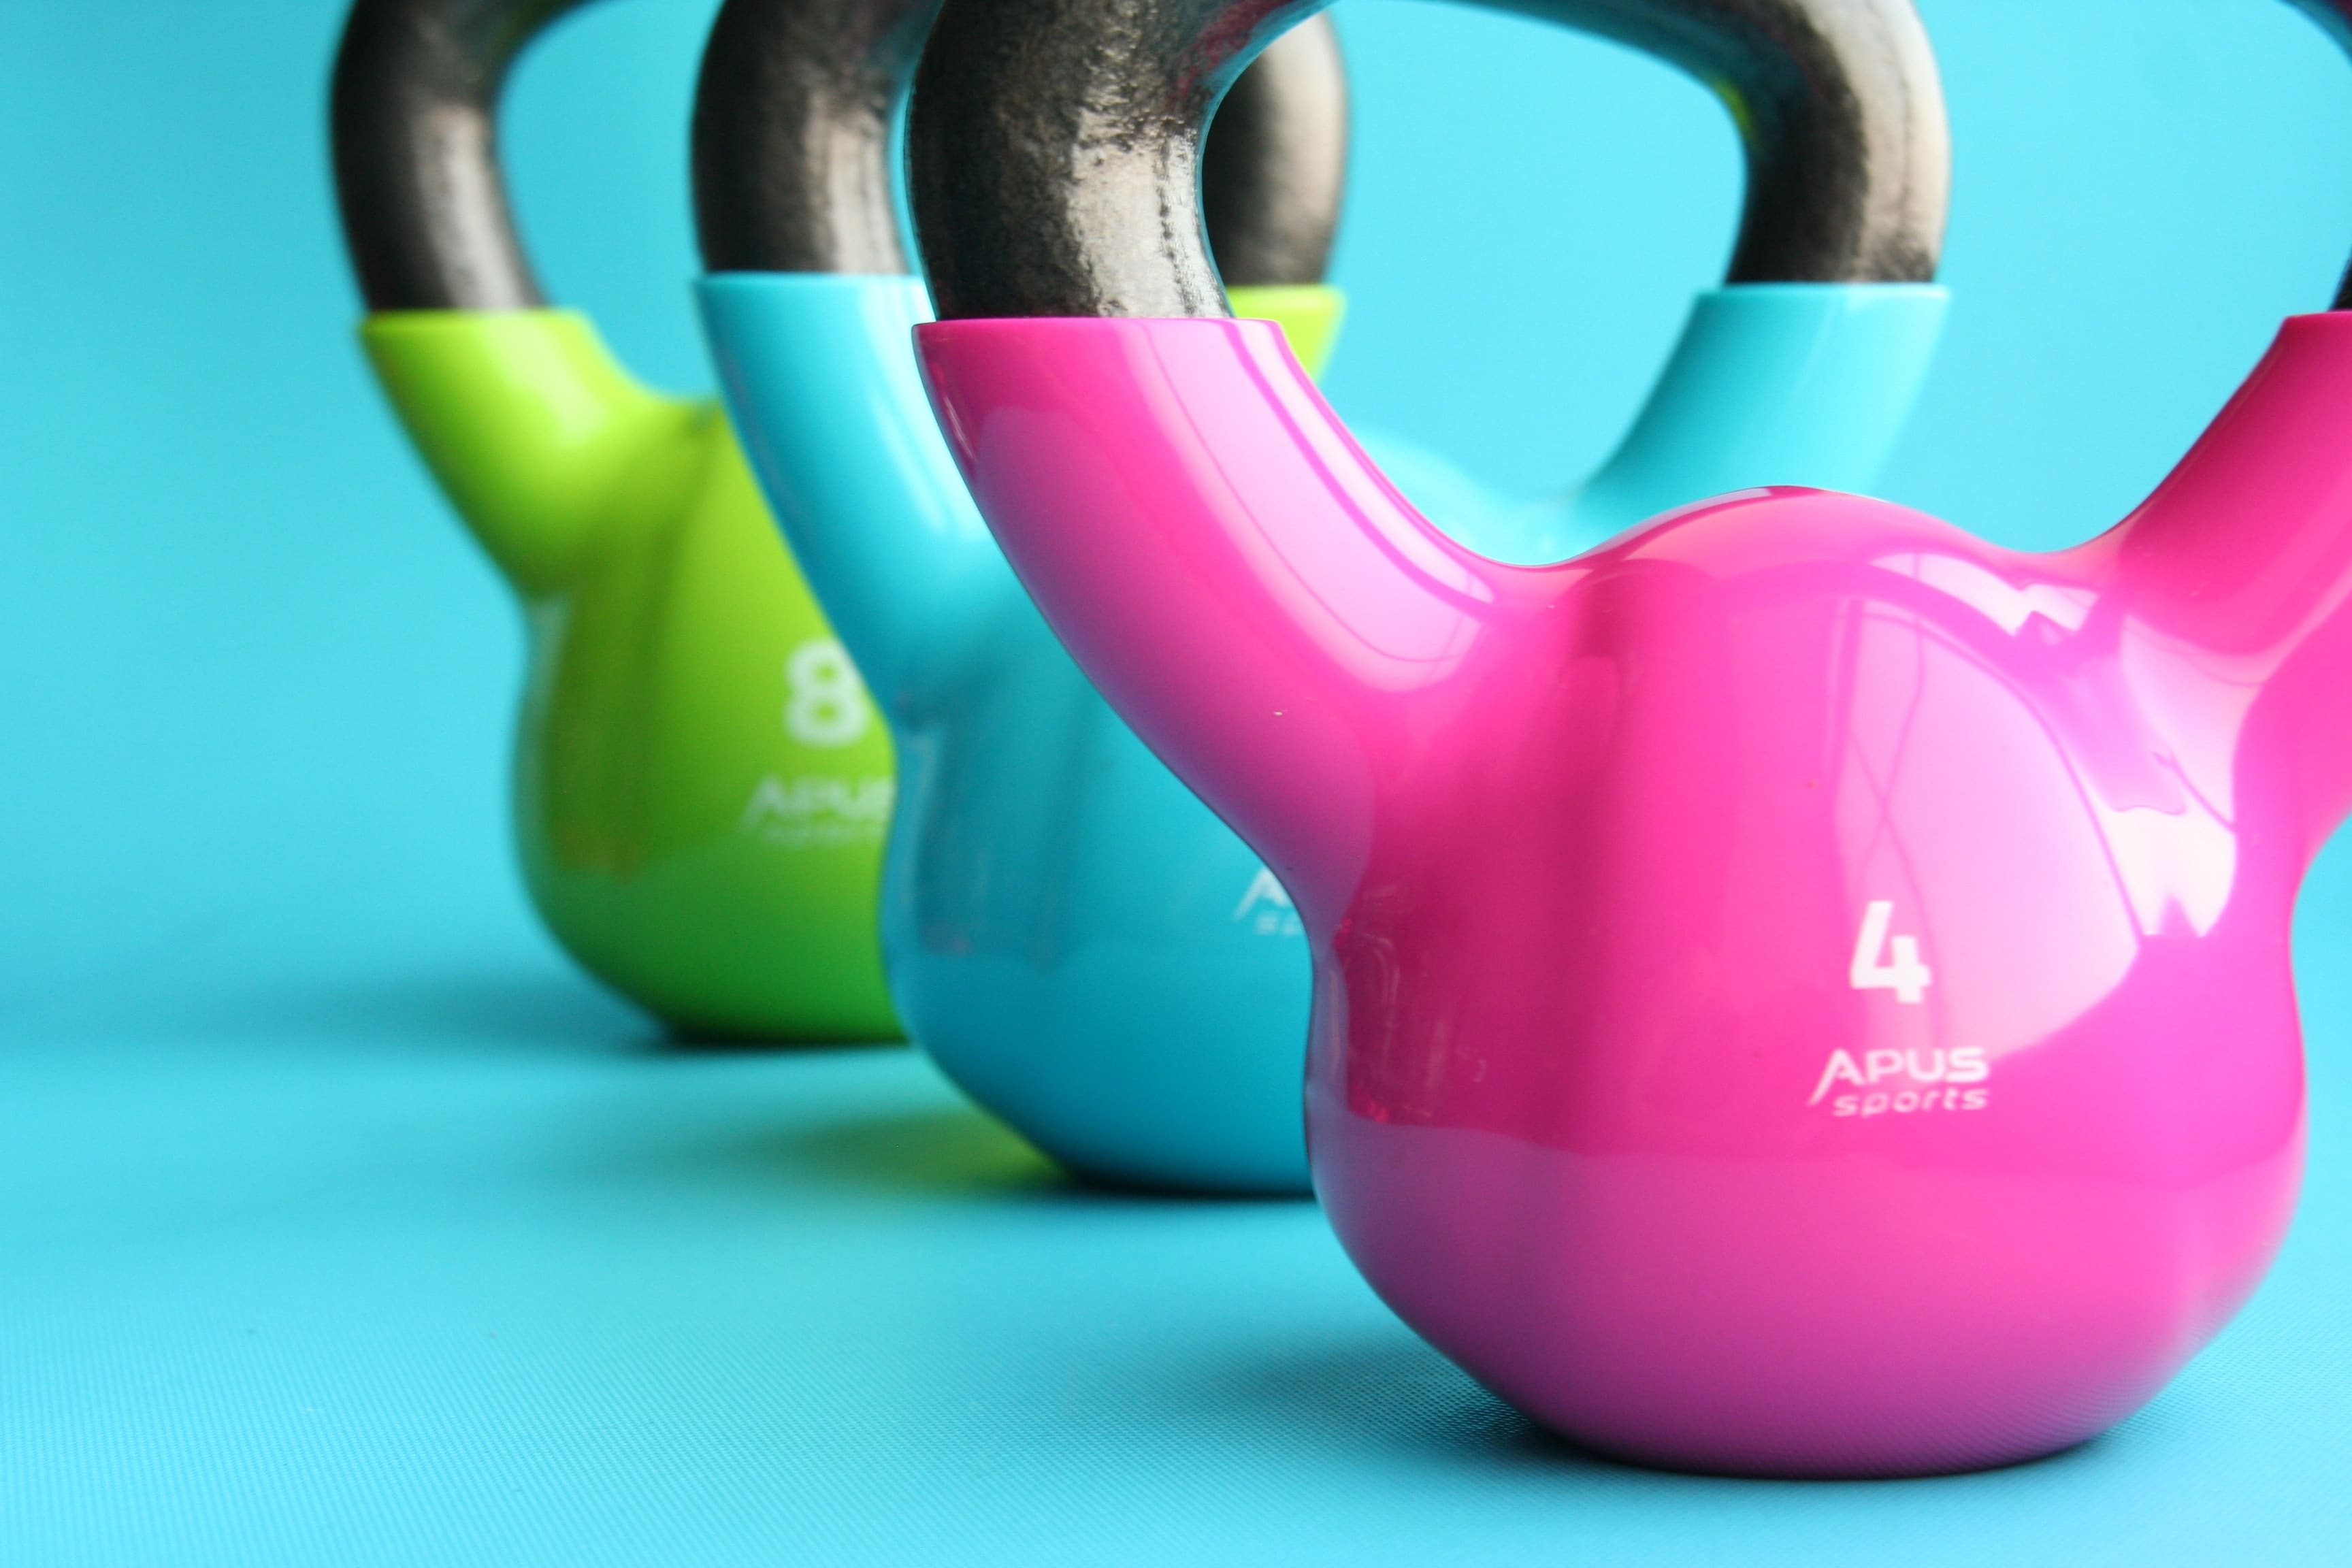 Why I joined a gym when I hate to exercise